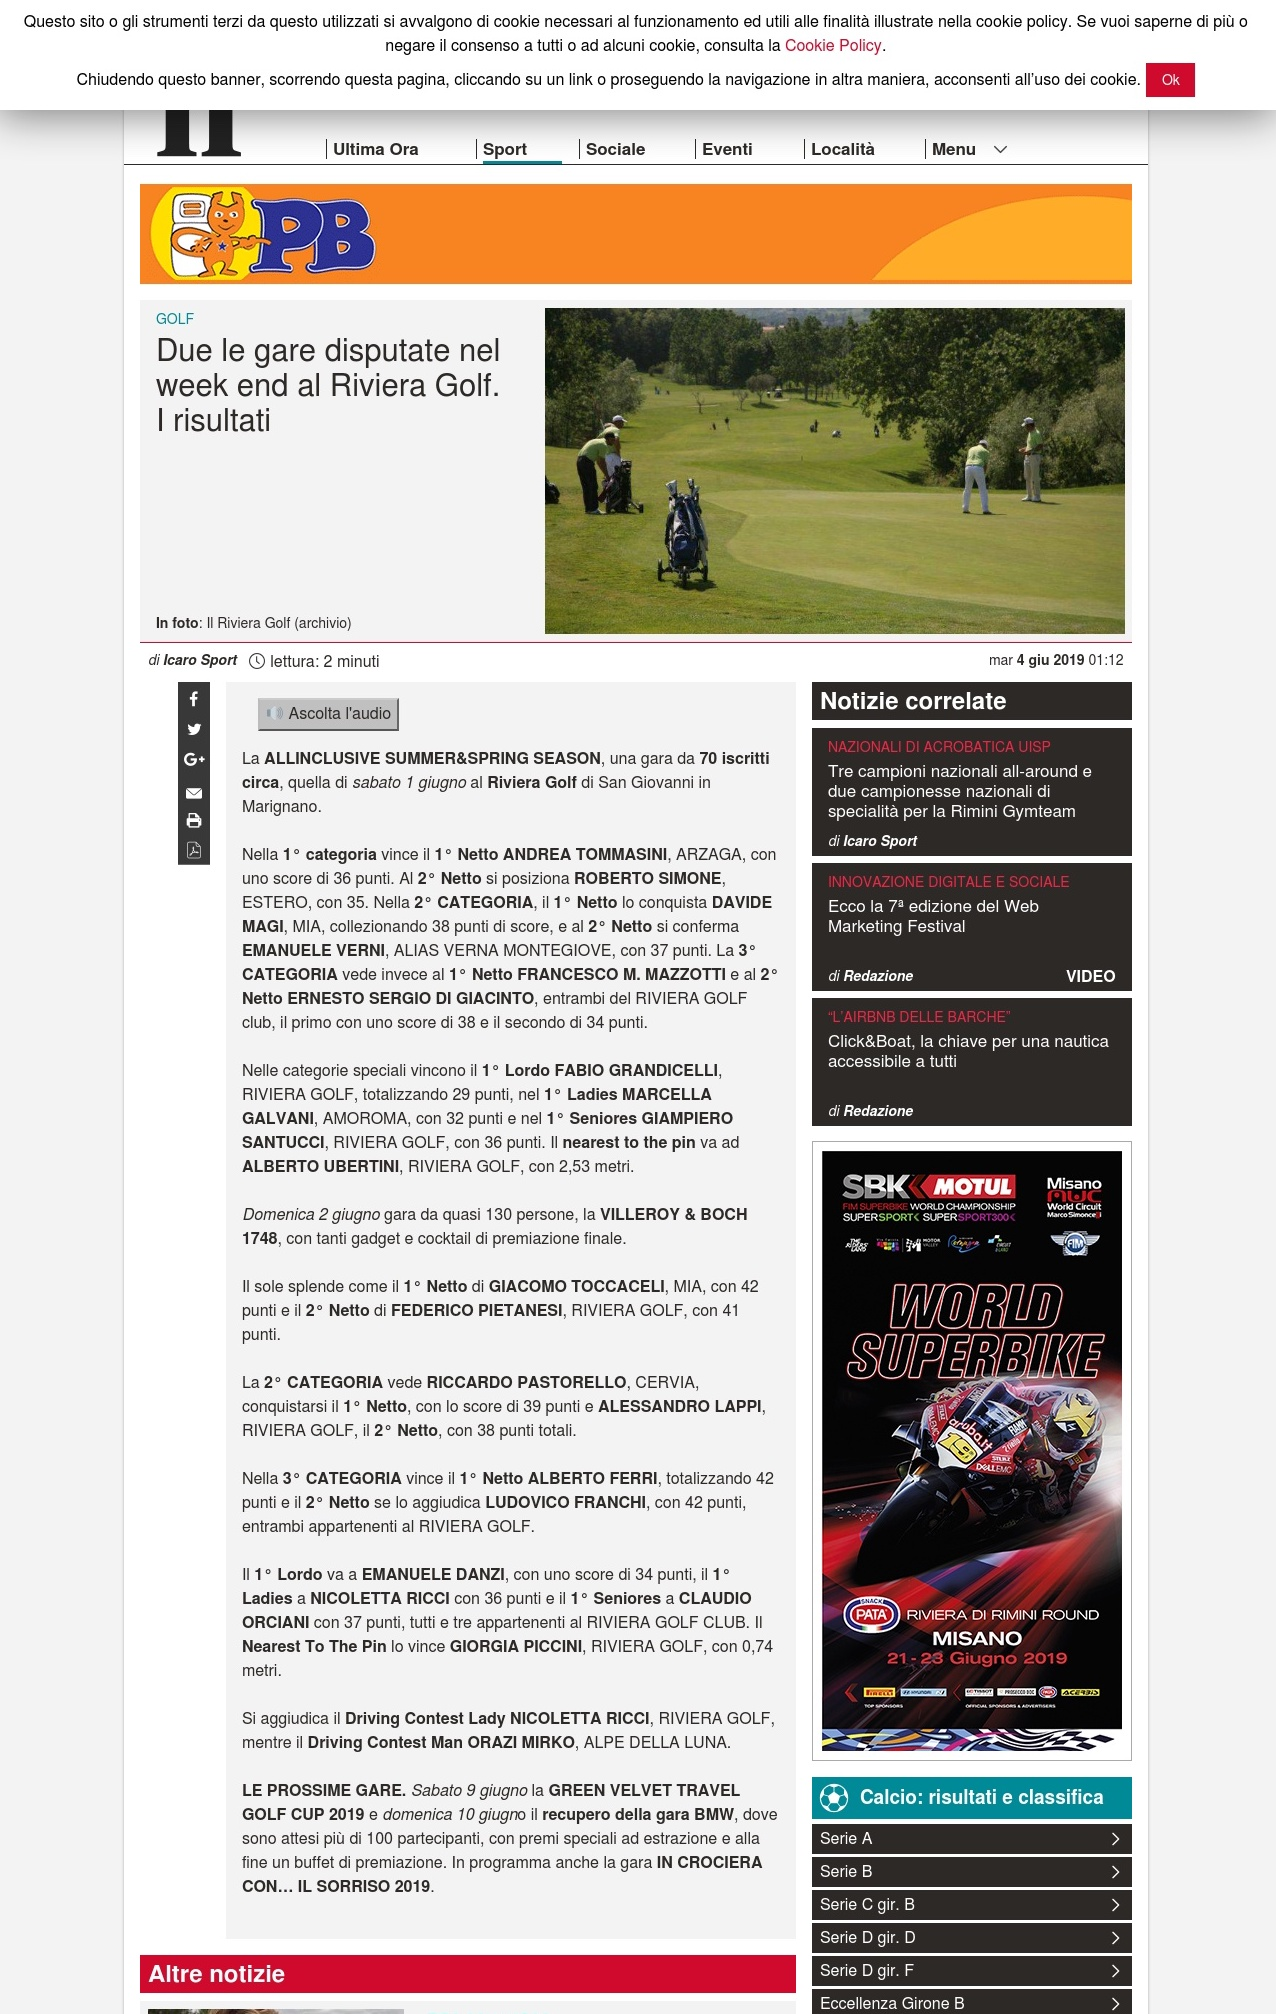 Due le gare disputate nel week end al Riviera Golf. I risultati